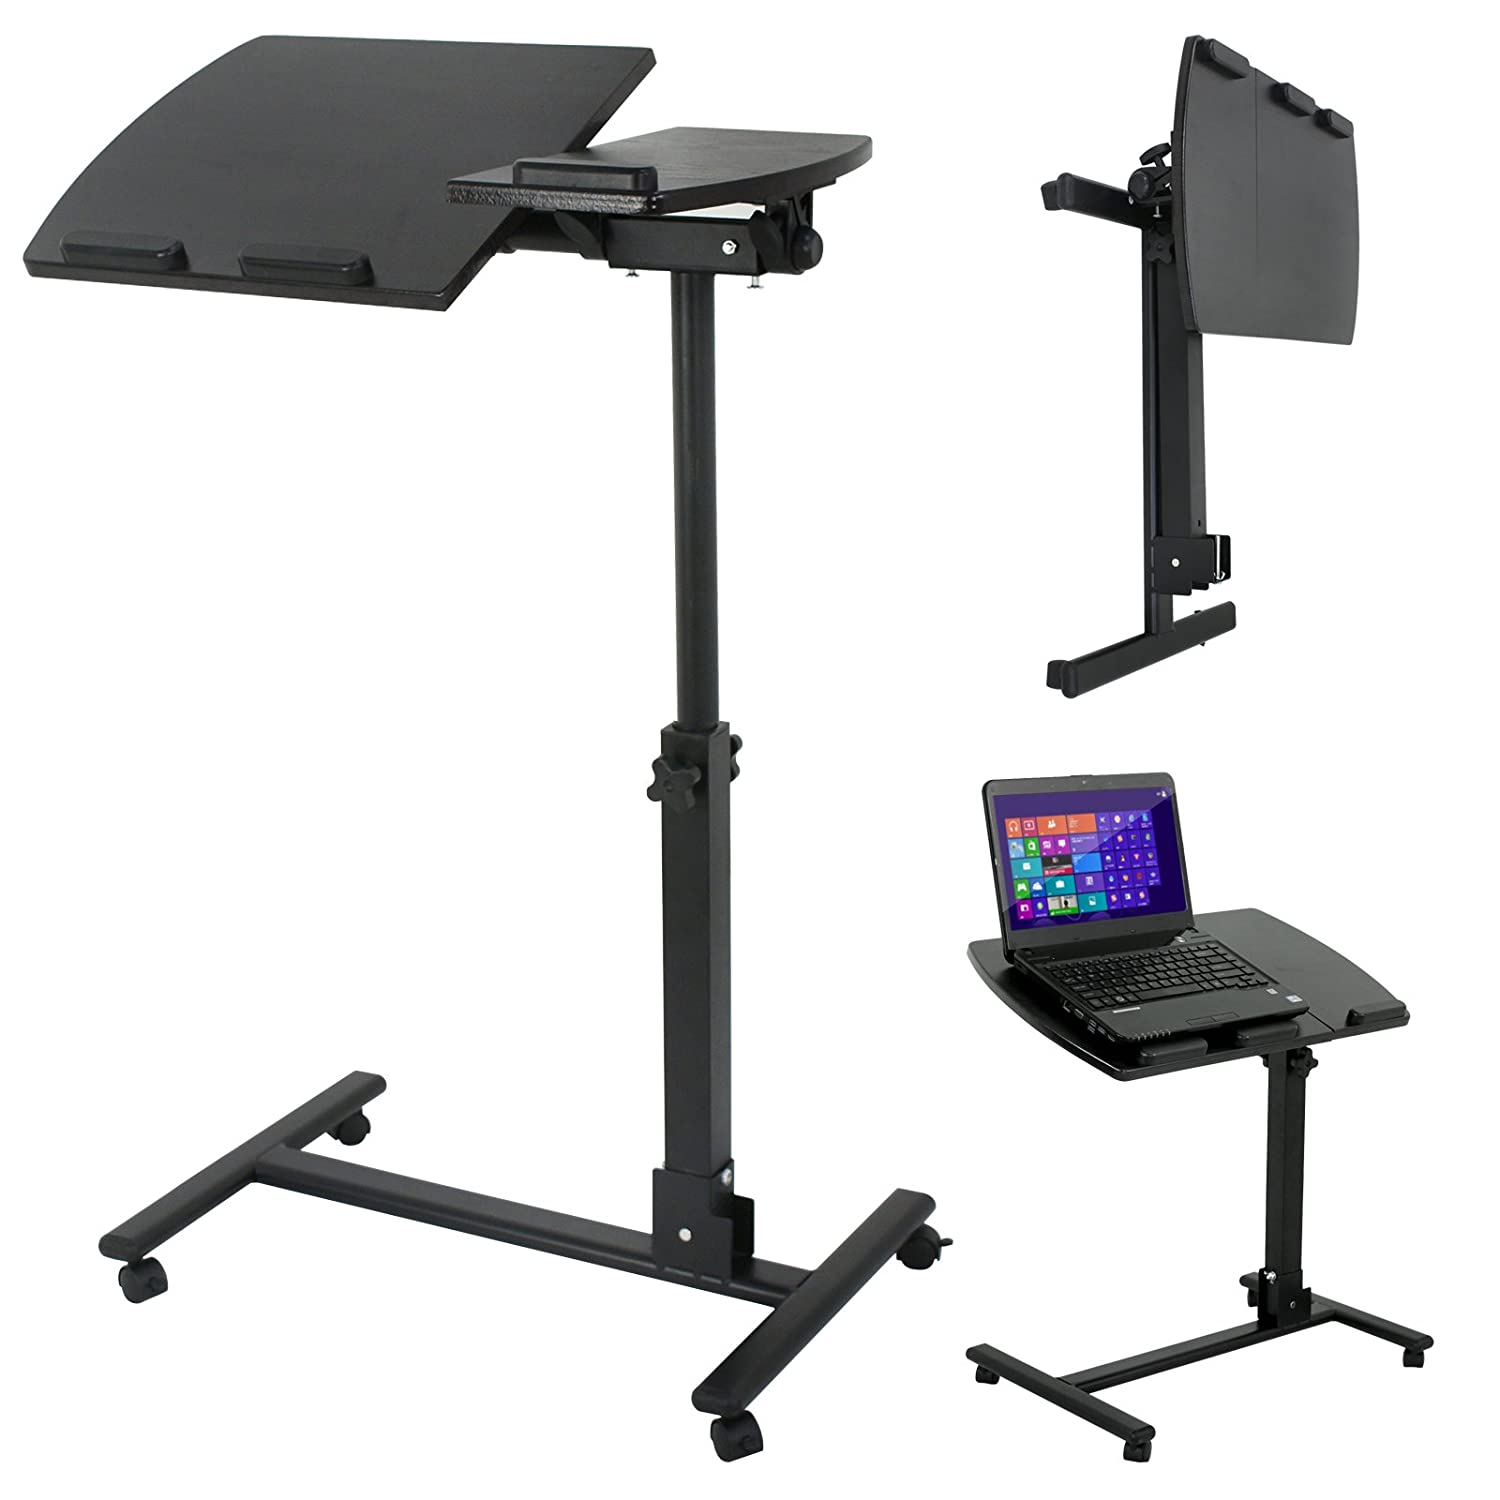 Smartxchoices Angle Height Adjustable Laptop Stand Rolling Desk Cart, Mobile Laptop Computer Holder w/Side Table and Casters - 180° Tilt 360° Swivel